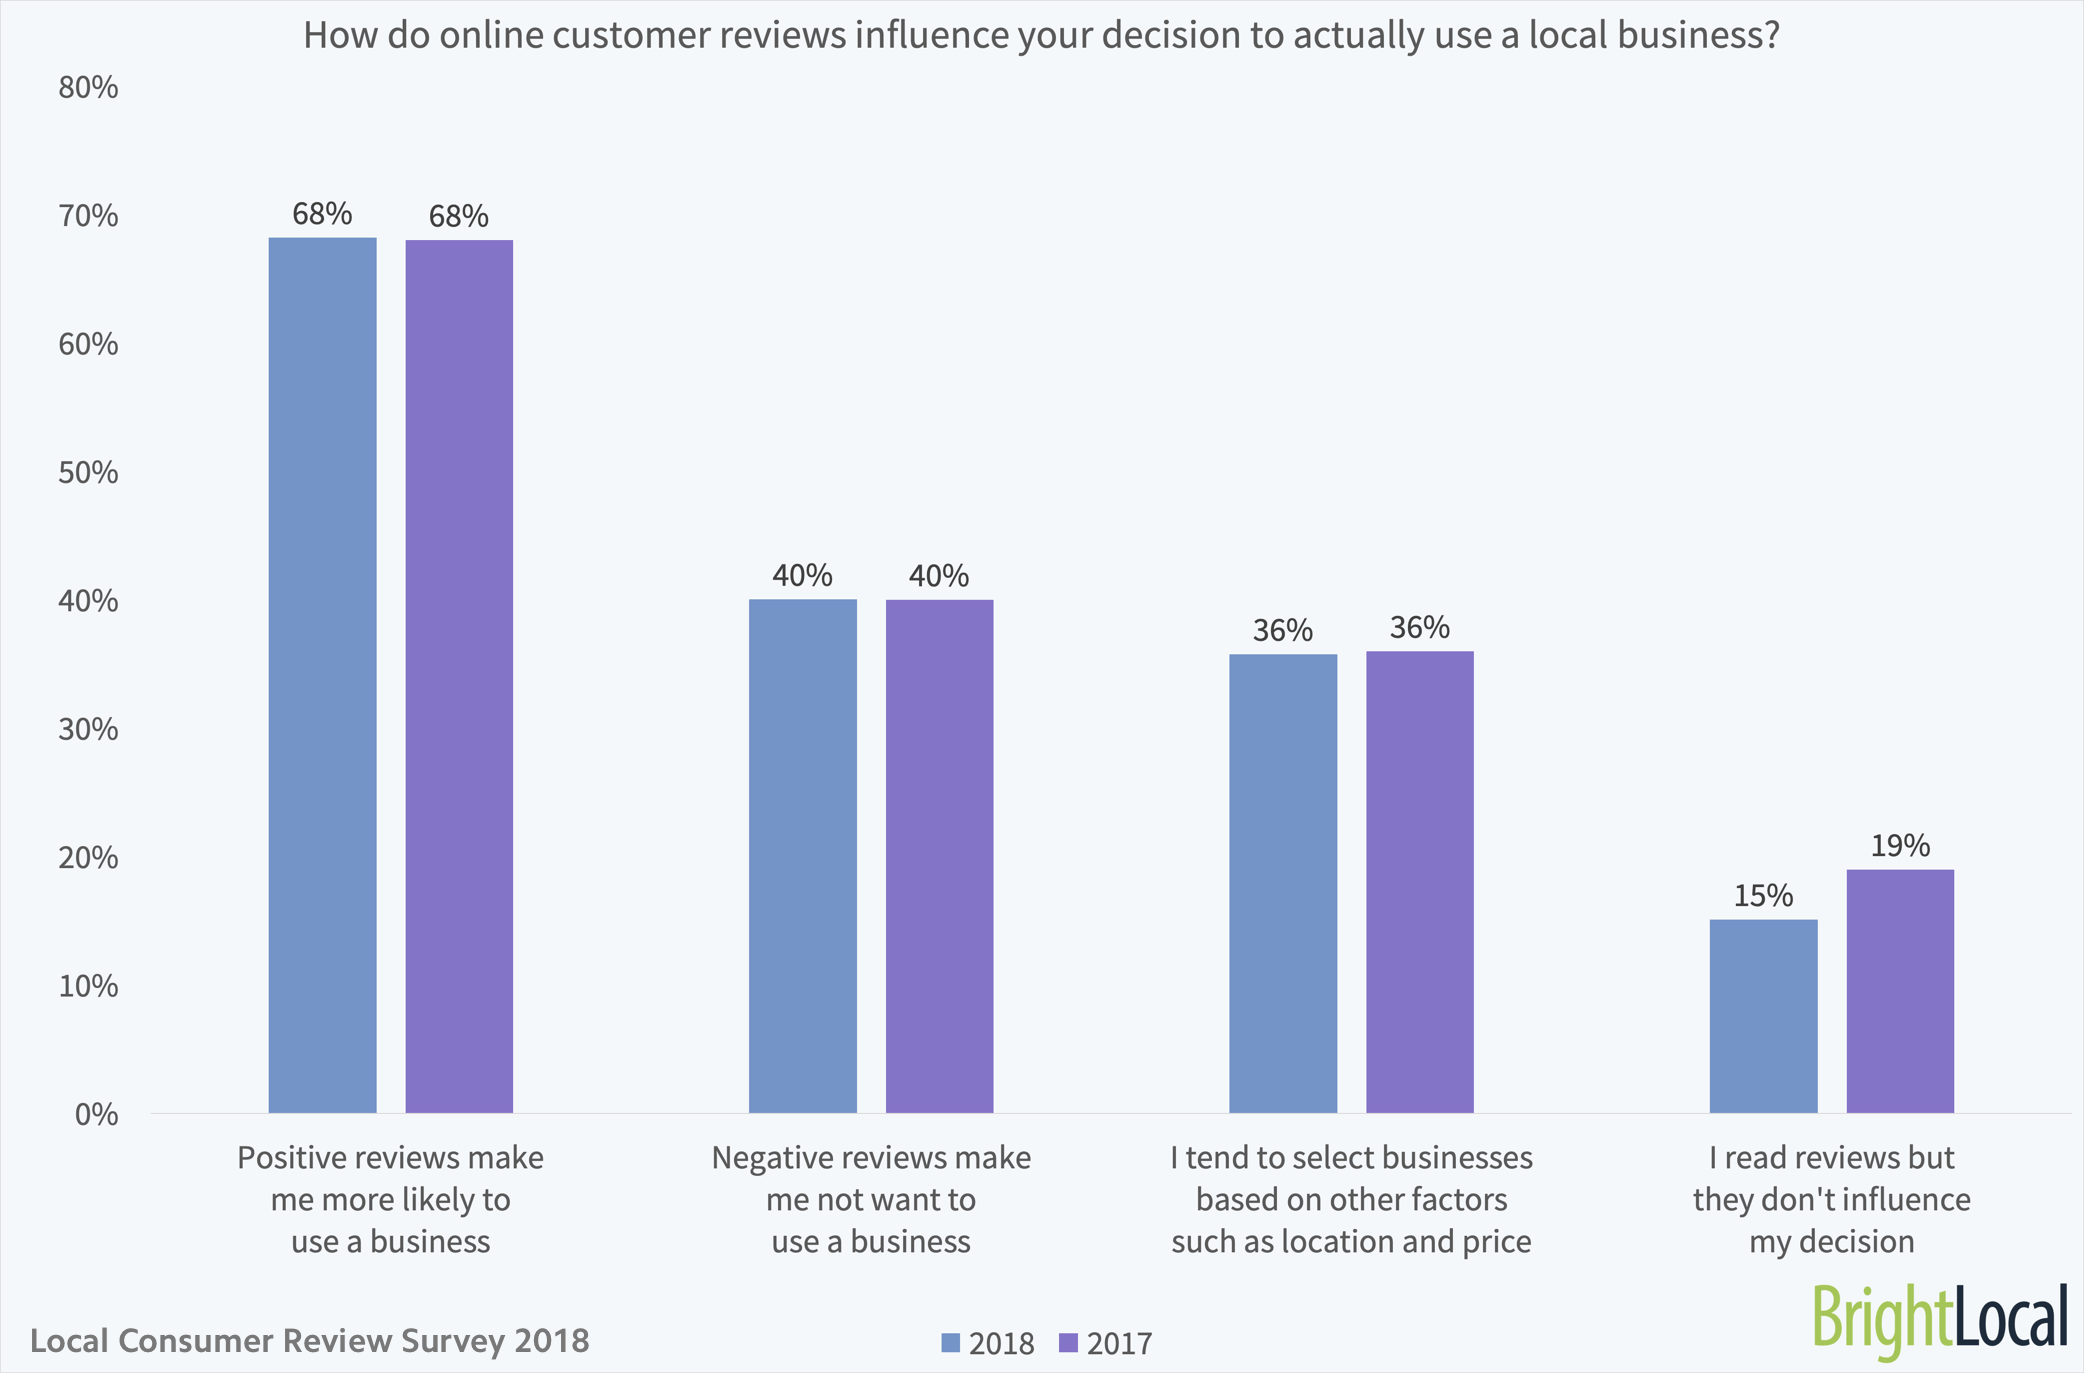 806a7eecc5 How do online customer reviews influence your decision to actually use a  local business